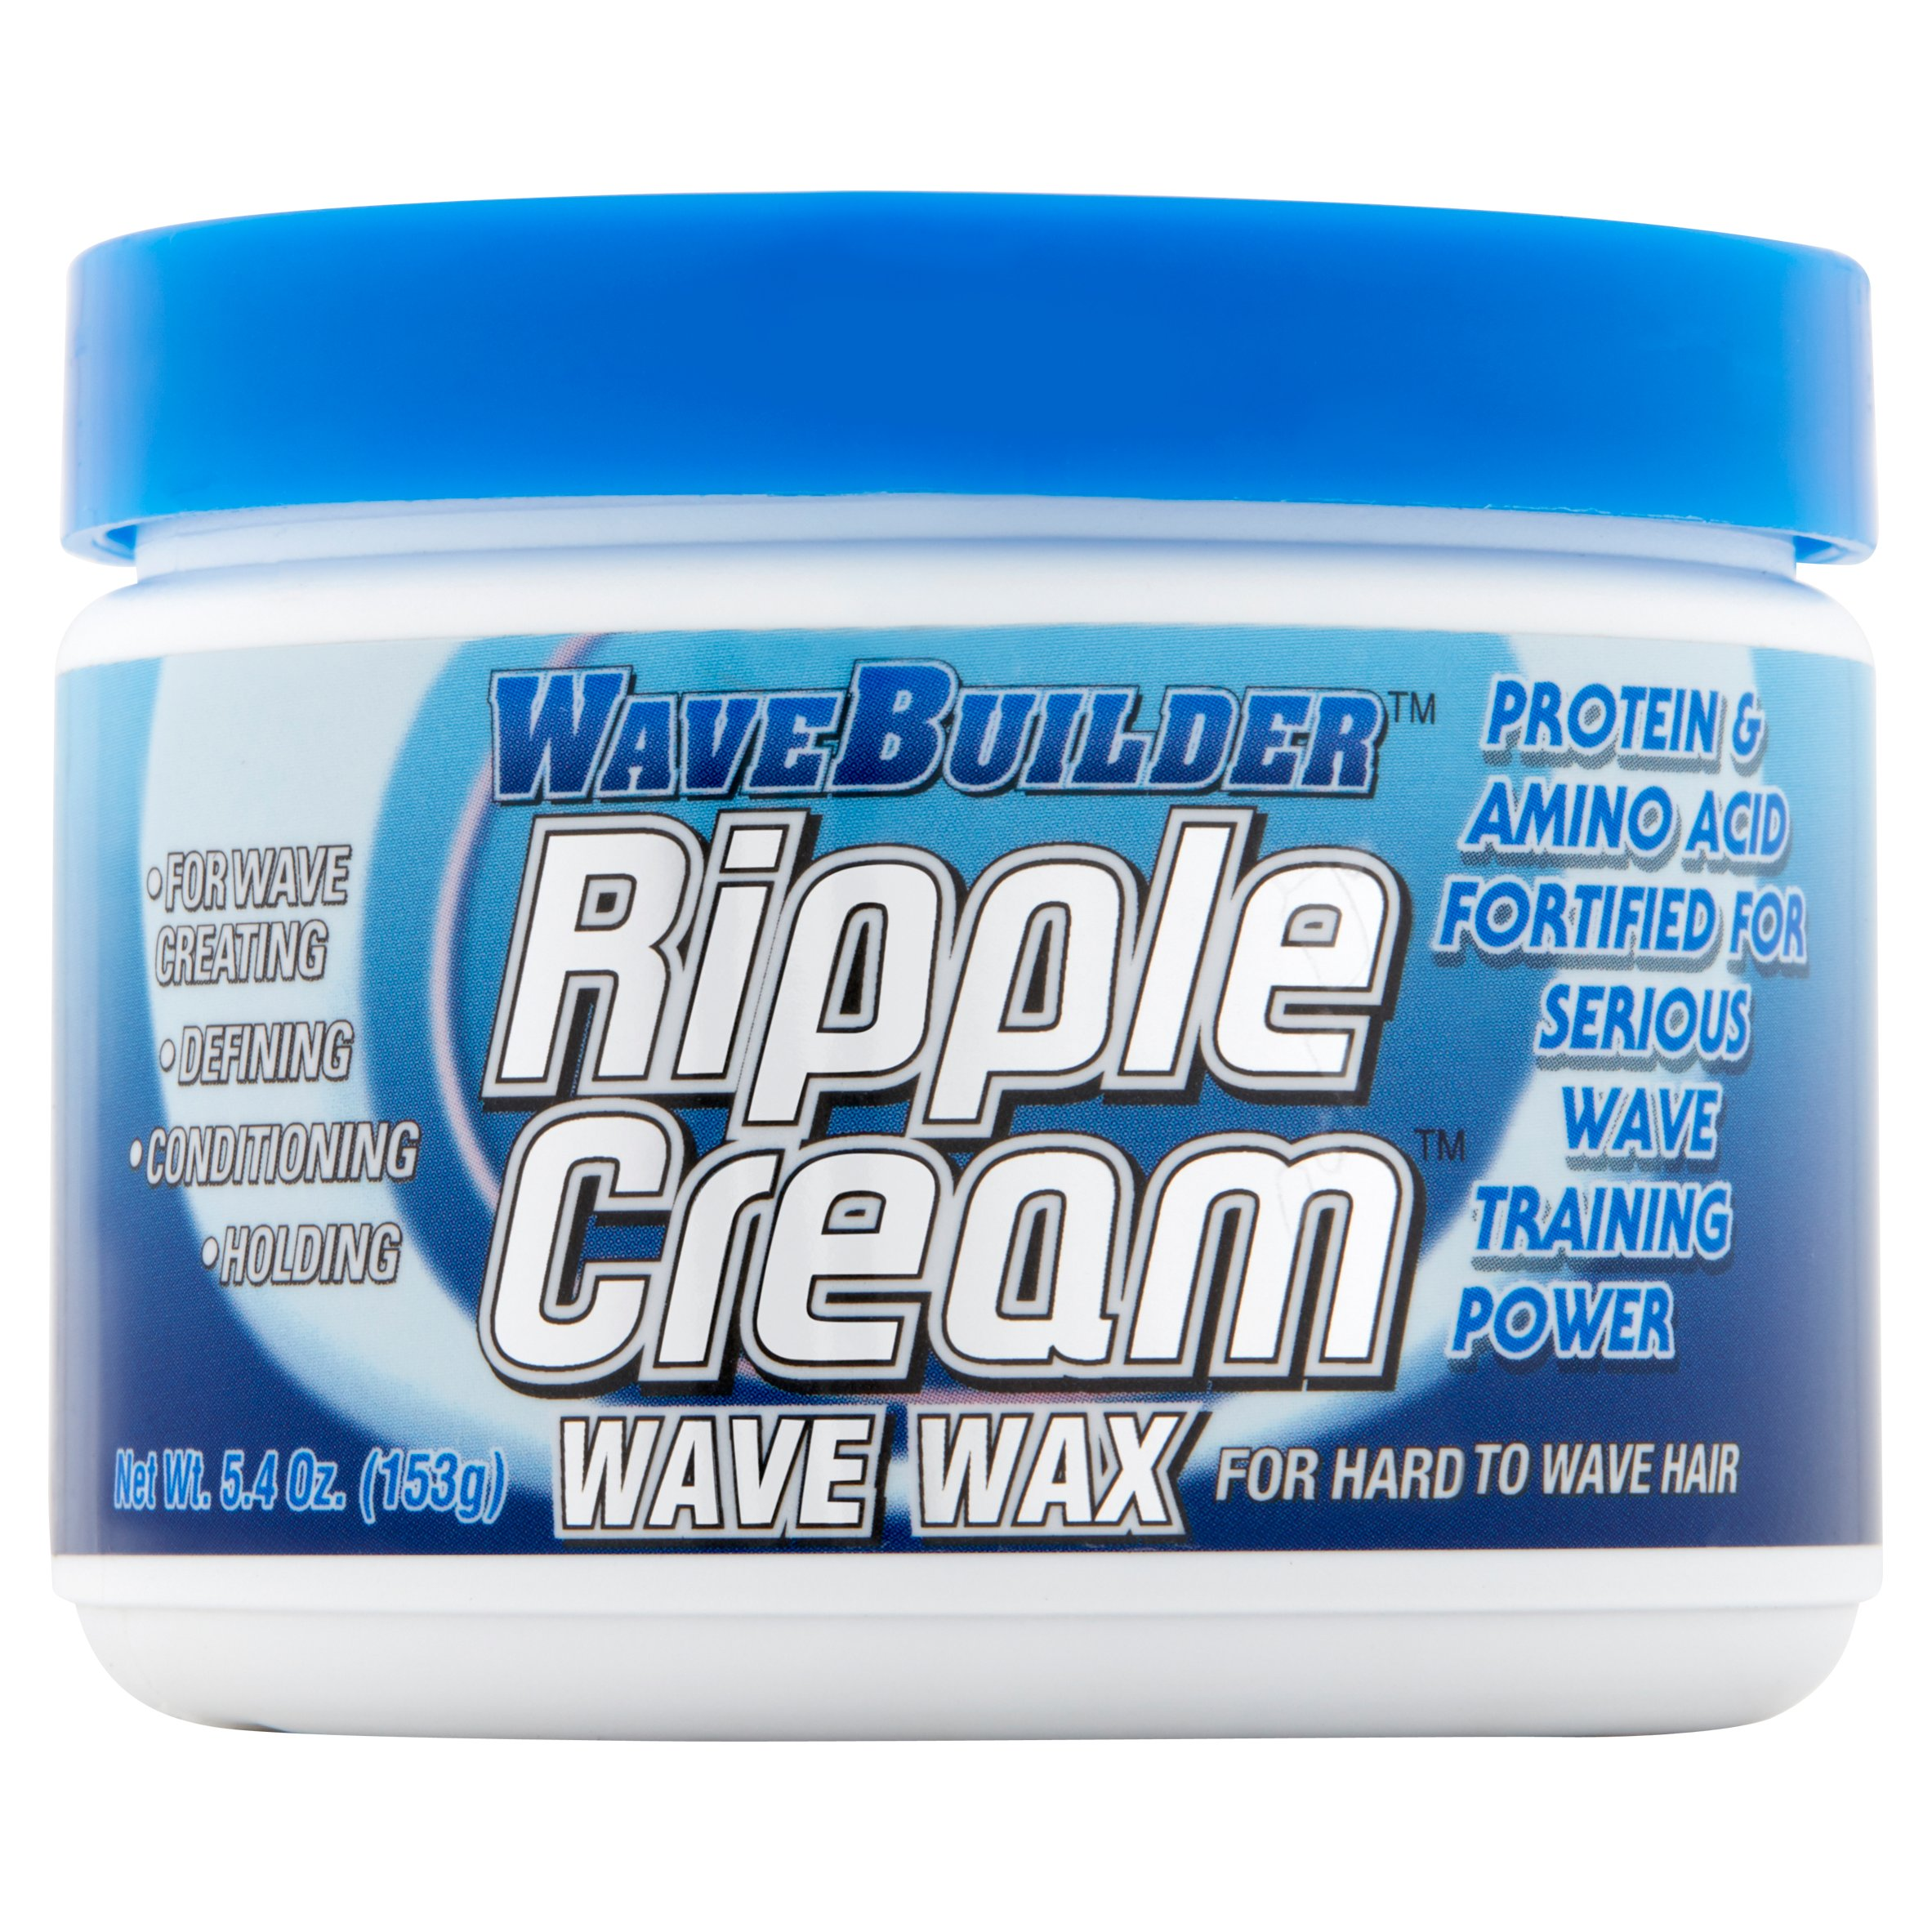 WaveBuilder Ripple Cream Wave Wax, 5.4 oz